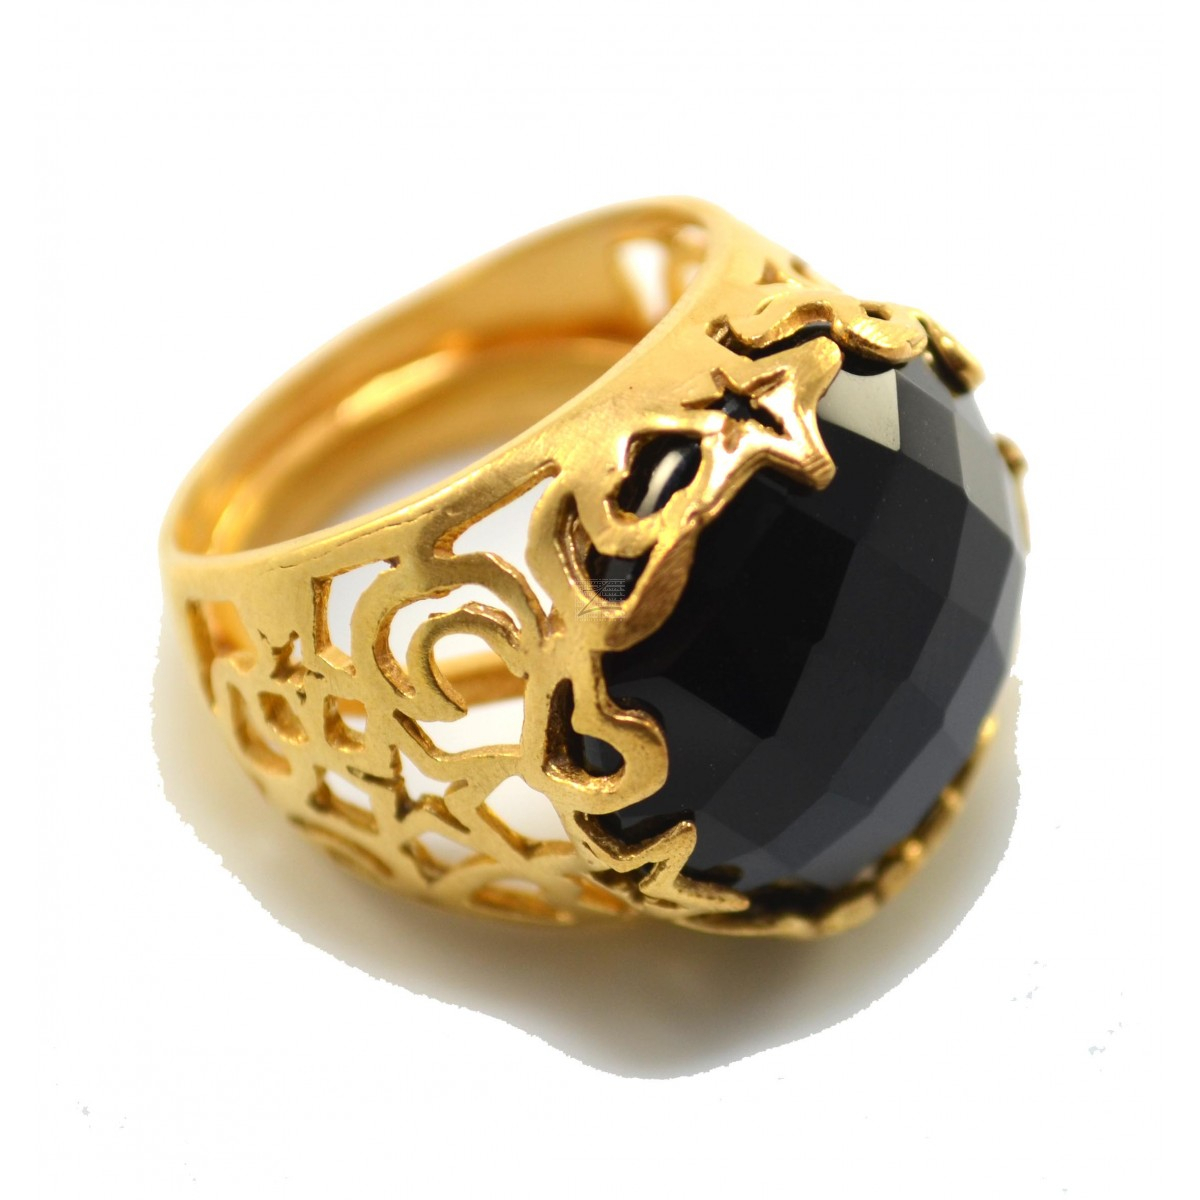 Black Multifaceted Onyx Stone Cocktail Ring With 24K Gold Plated Regarding Most Recently Released Multifaceted Rings (View 6 of 25)